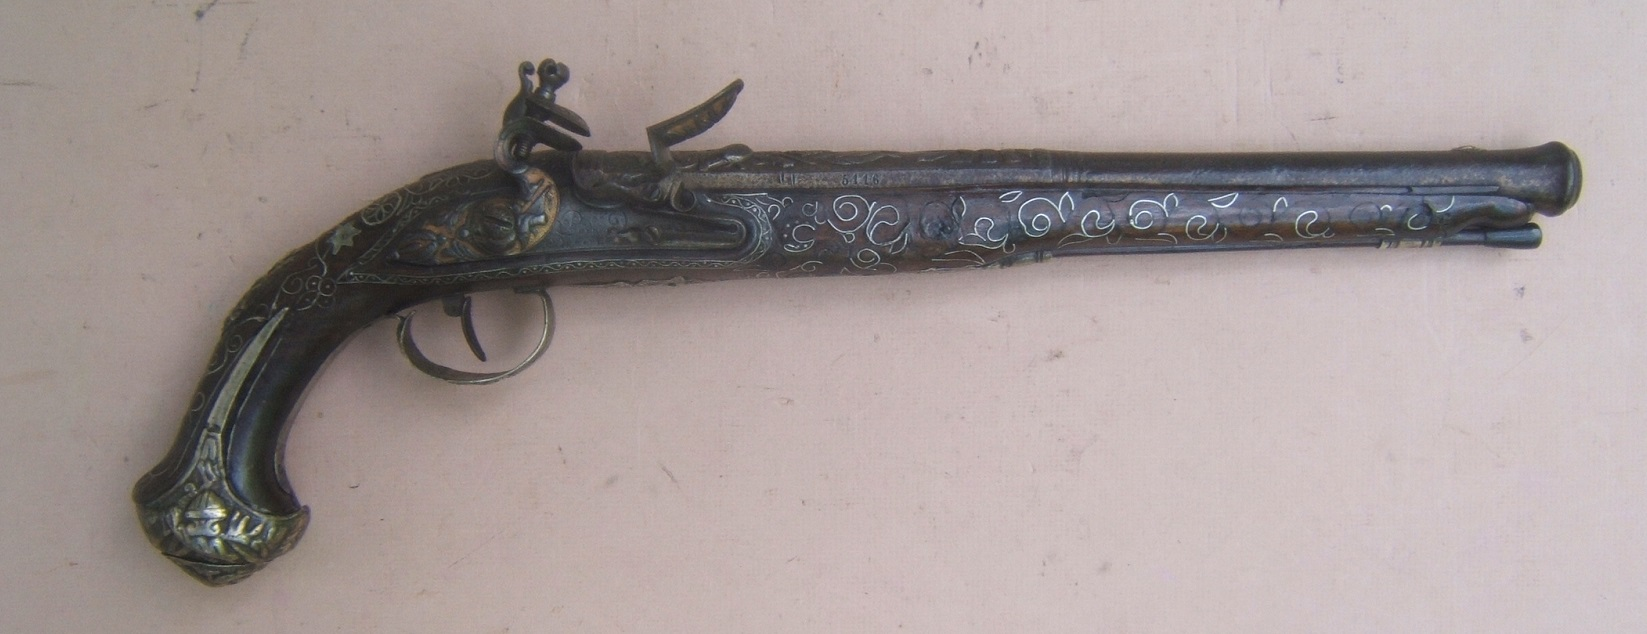 Ambrose Antique Guns, Antique Firearms, Guns, Firearms